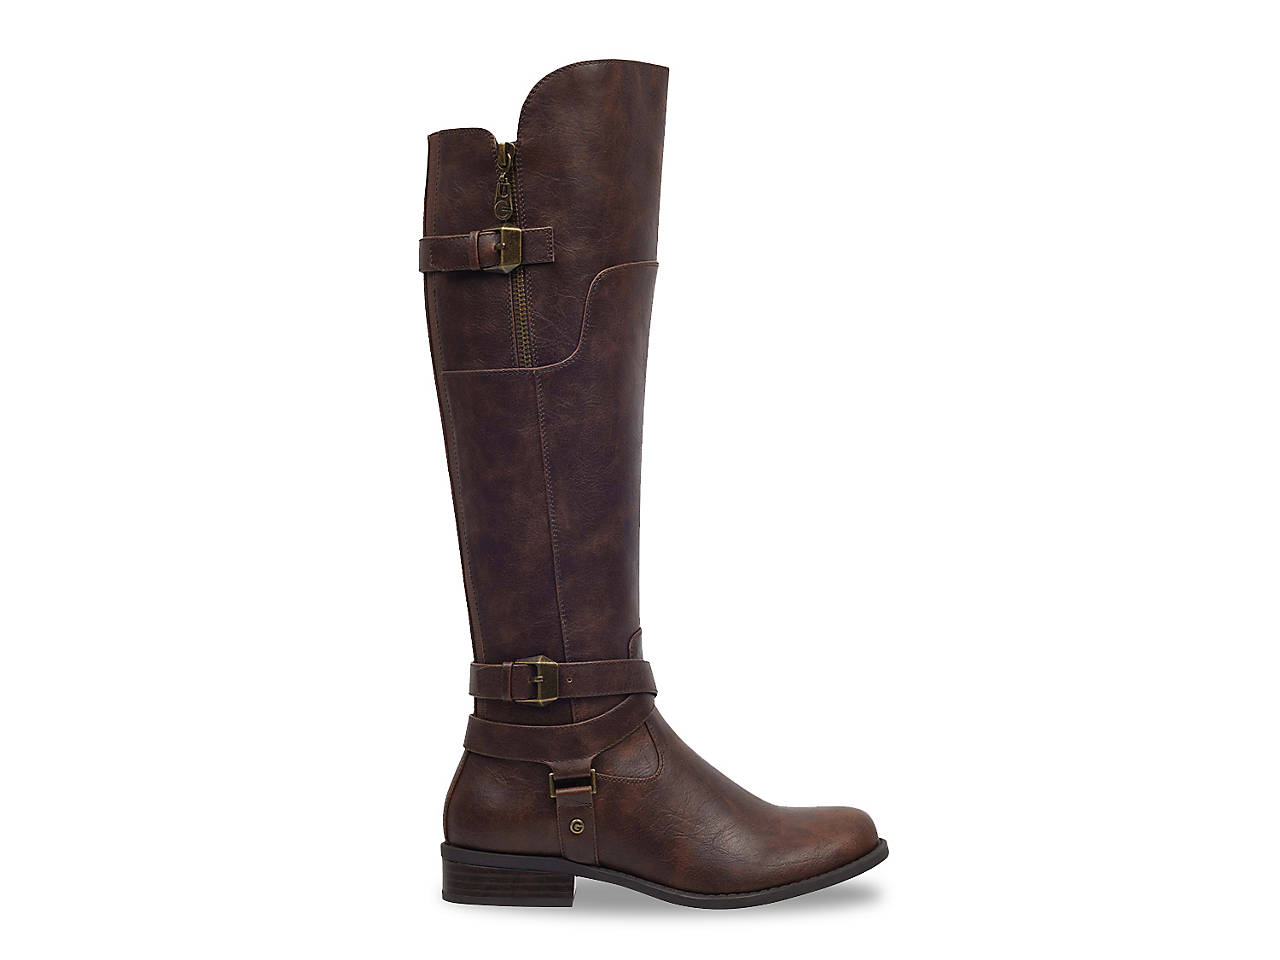 f4f58fa5e471 G by GUESS Hilight Riding Boot Women's Shoes | DSW